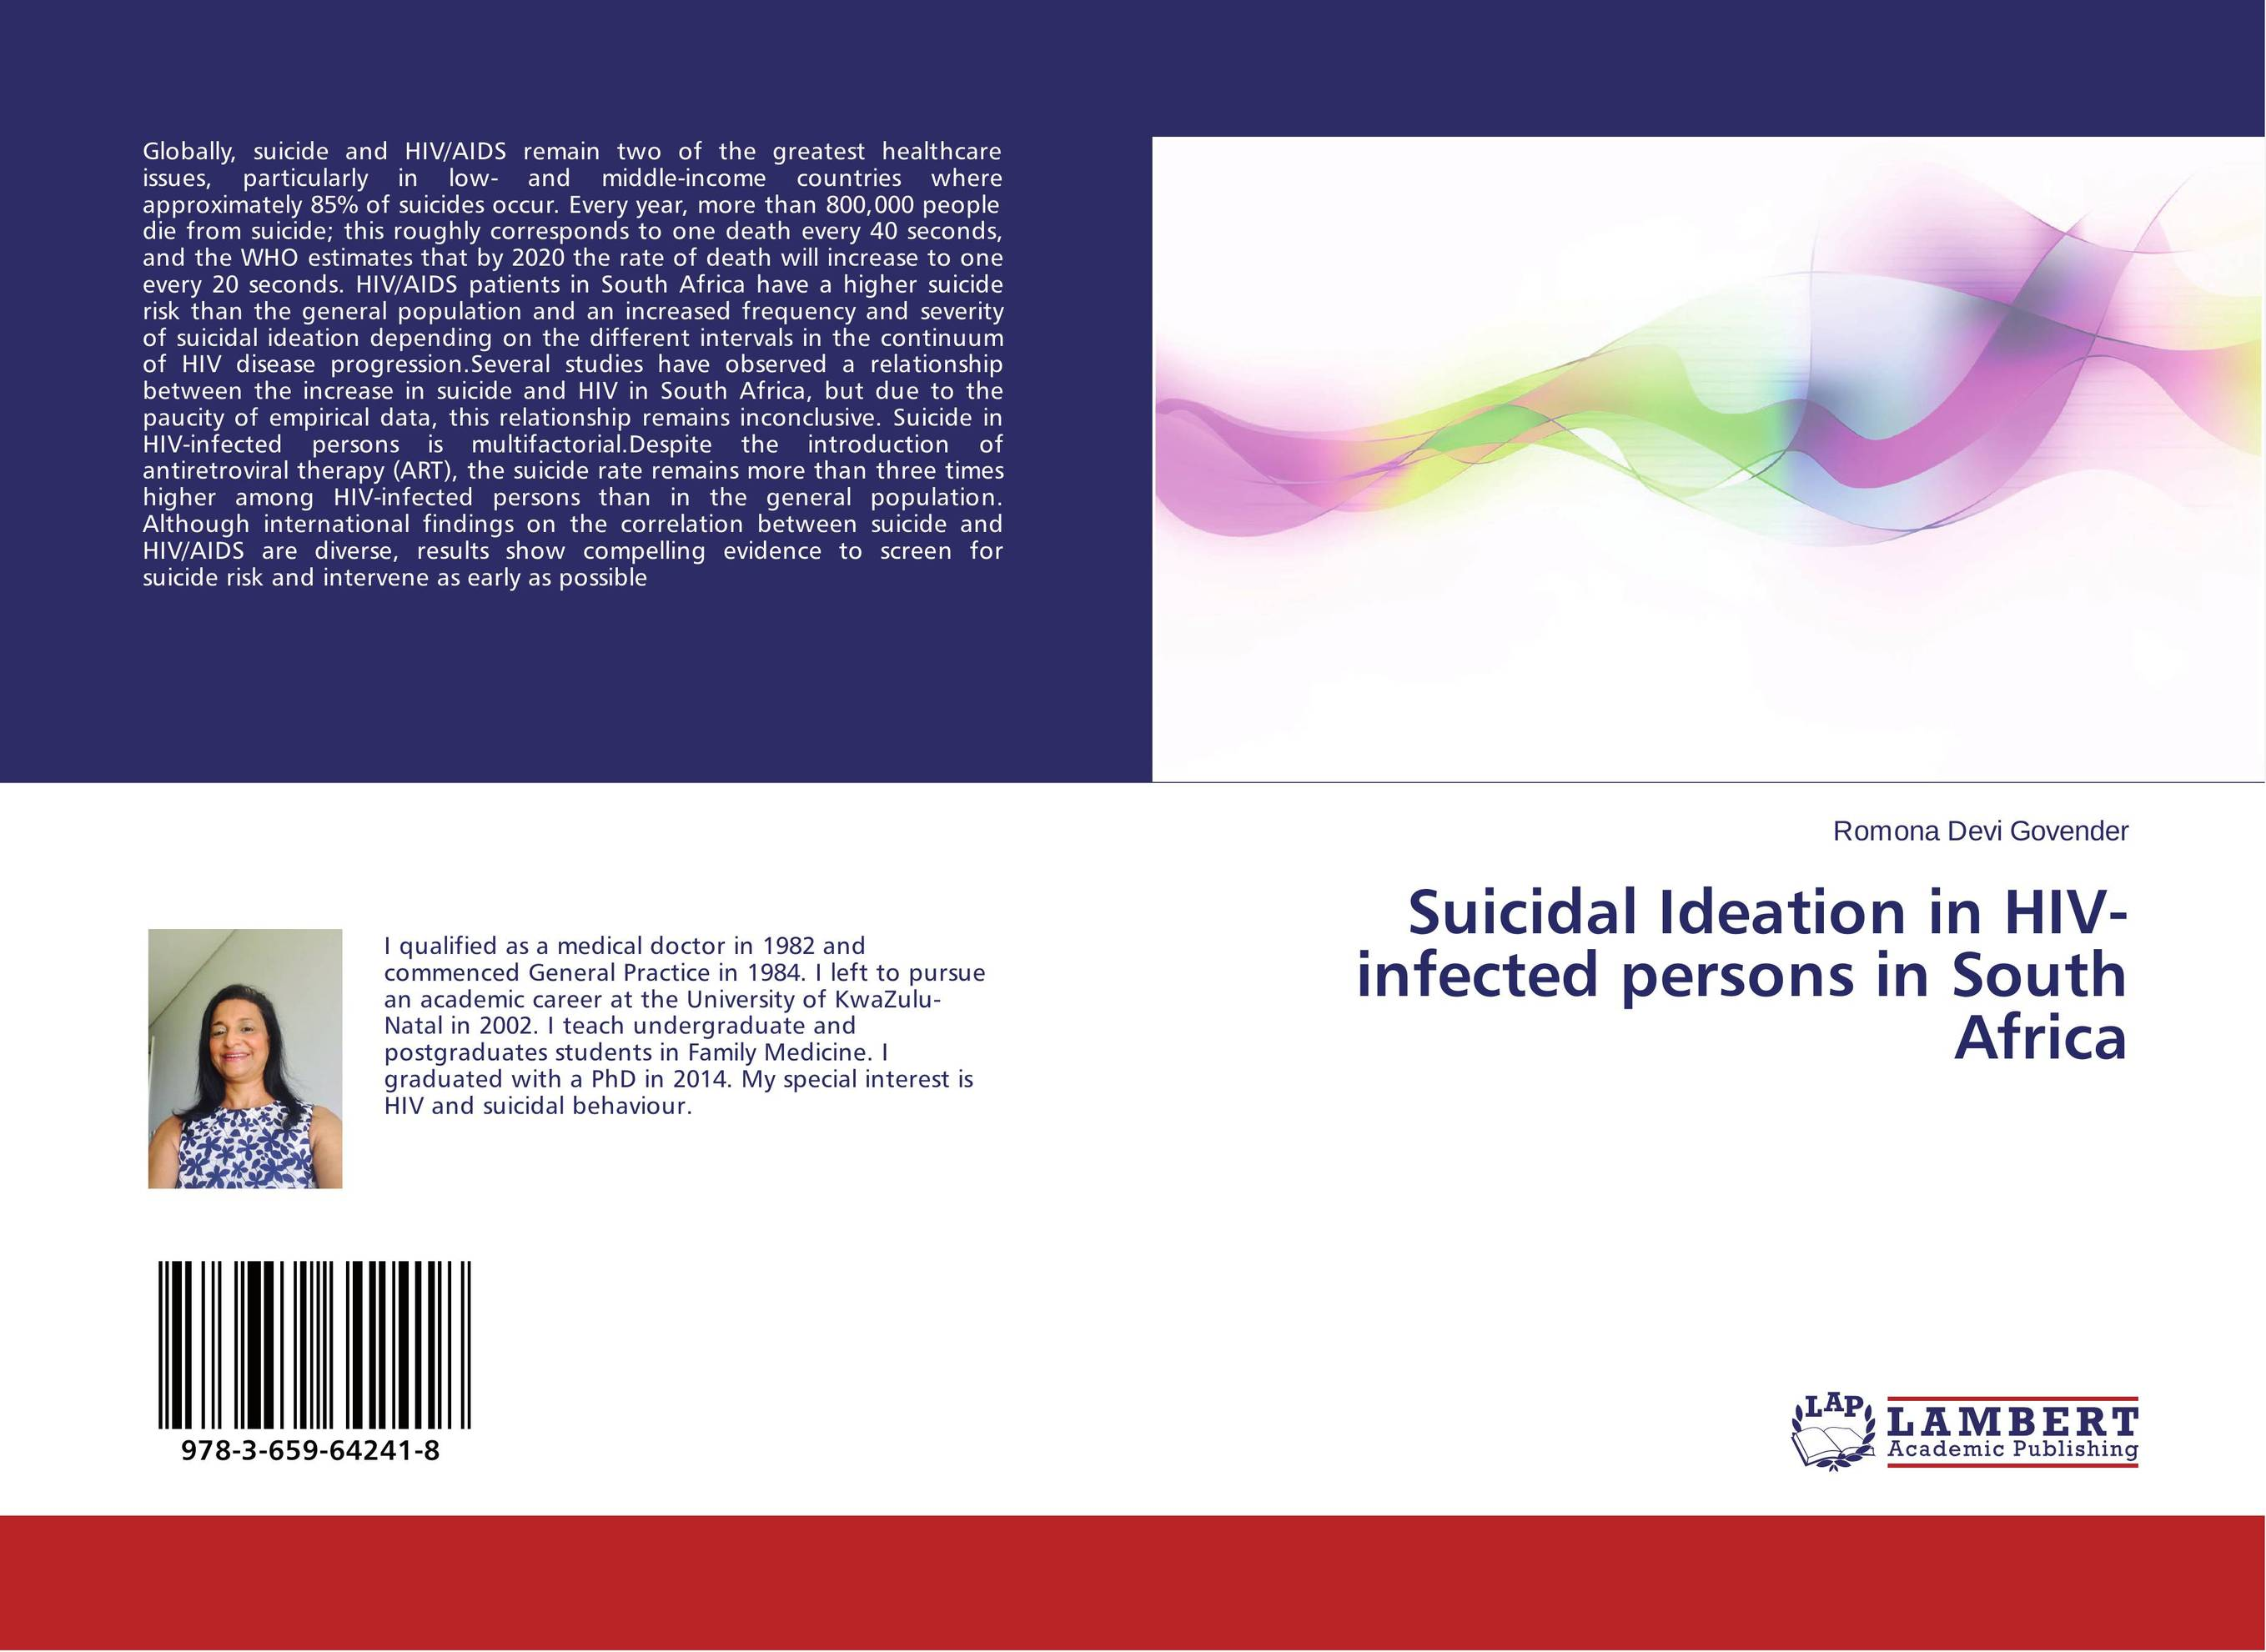 Suicidal Ideation in HIV-infected persons in South Africa arcade ndoricimpa inflation output growth and their uncertainties in south africa empirical evidence from an asymmetric multivariate garch m model